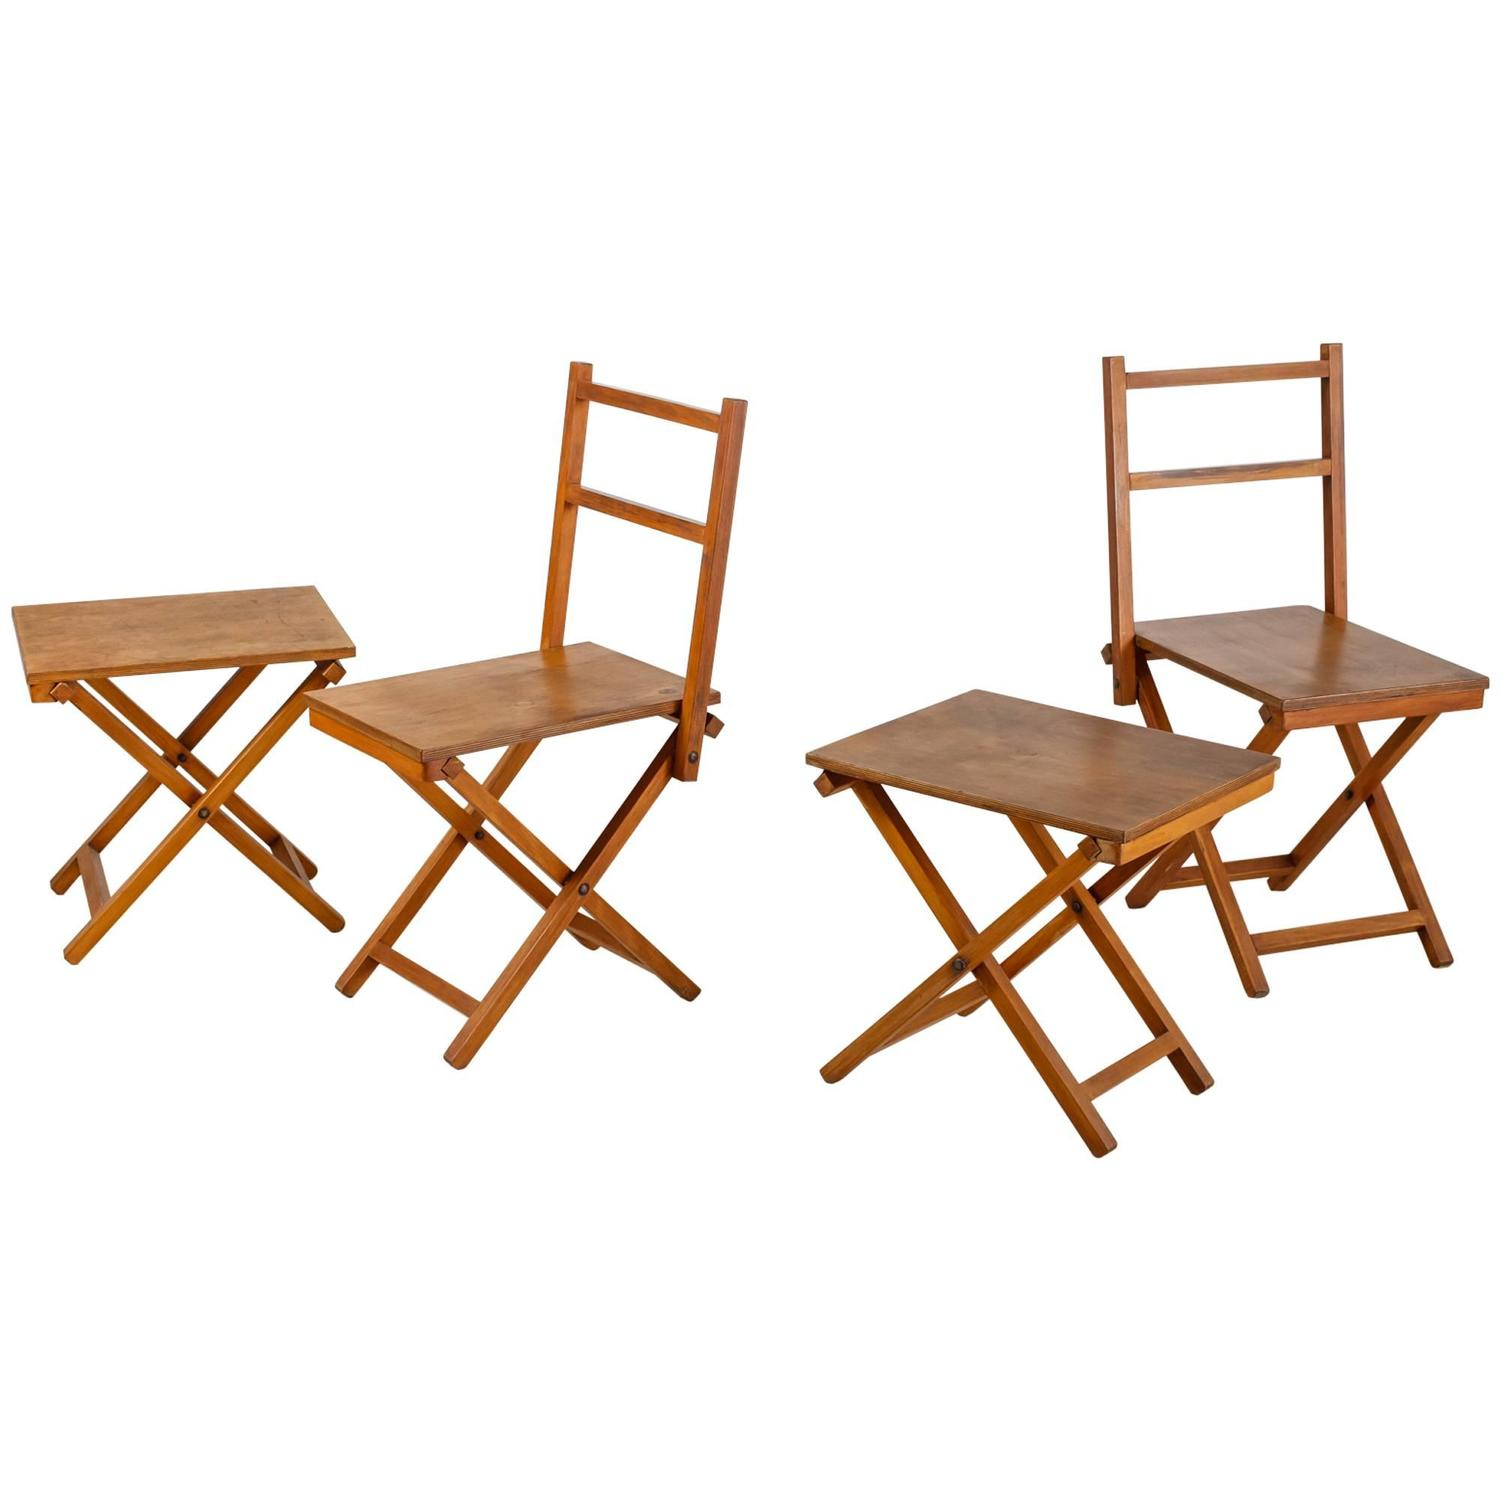 Set of Two Wooden Folding Chairs and Two Stools Dutch 1950s For Sale at 1st